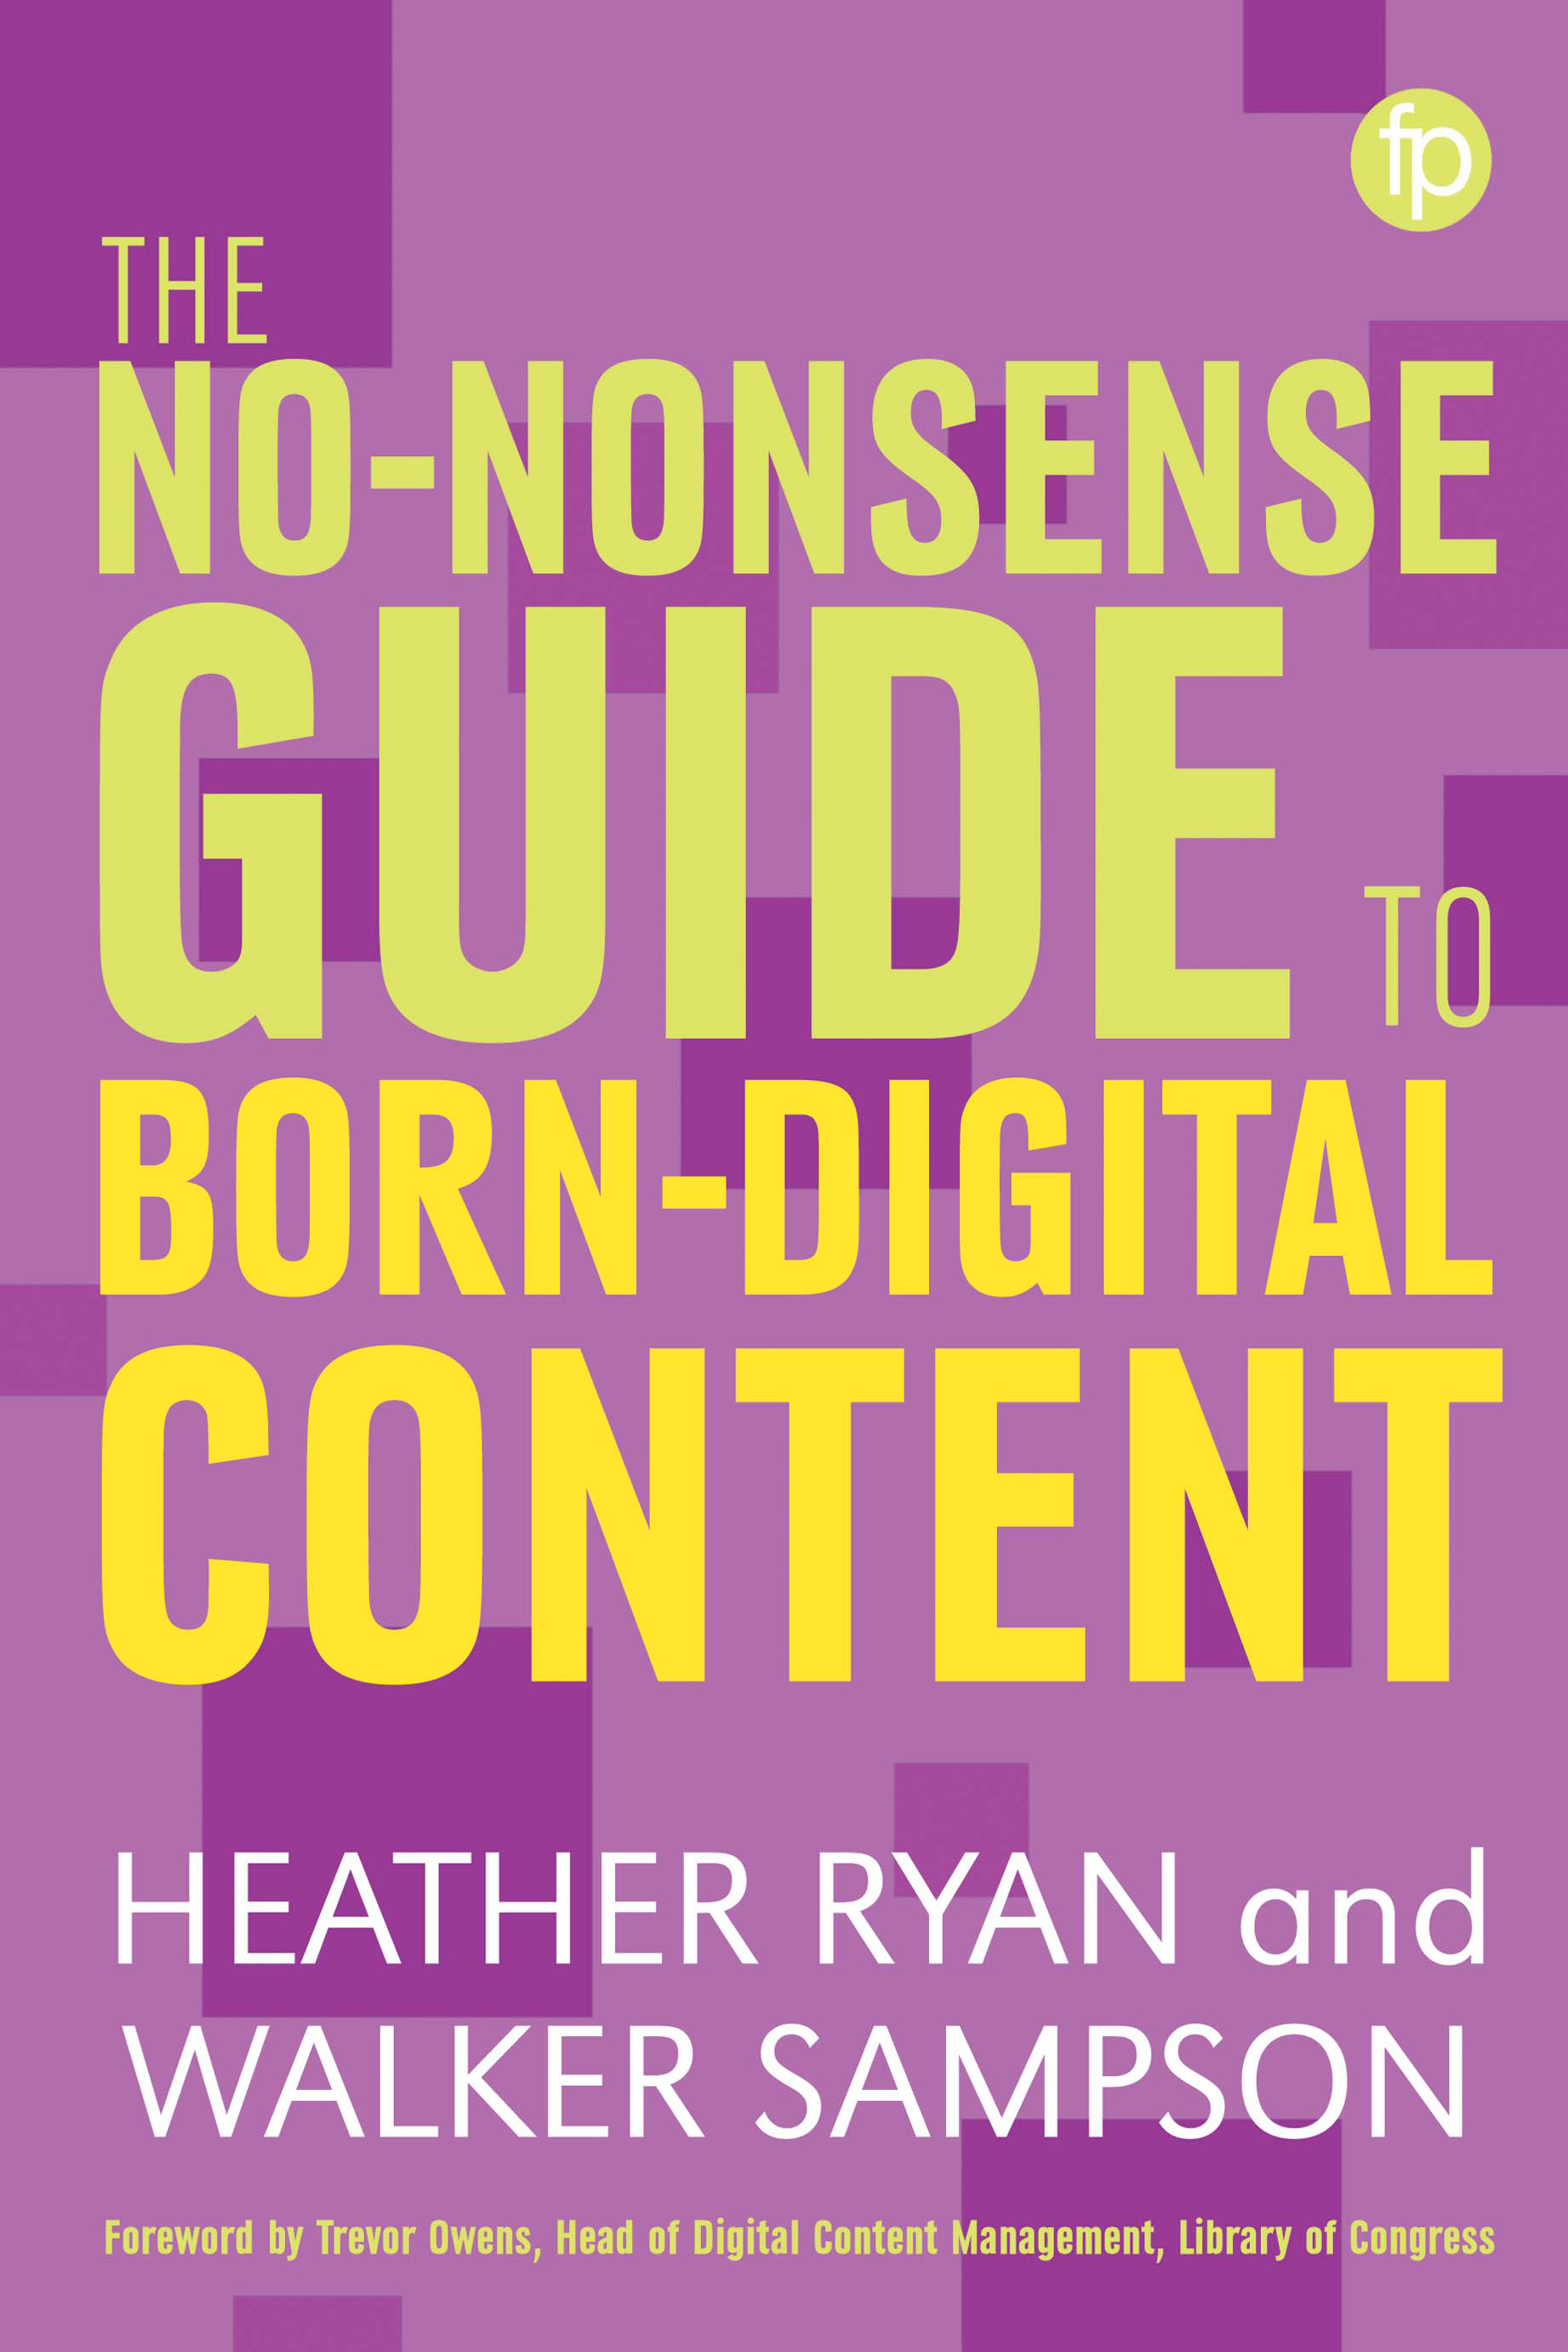 book cover for The No-Nonsense Guide to Born-Digital Content